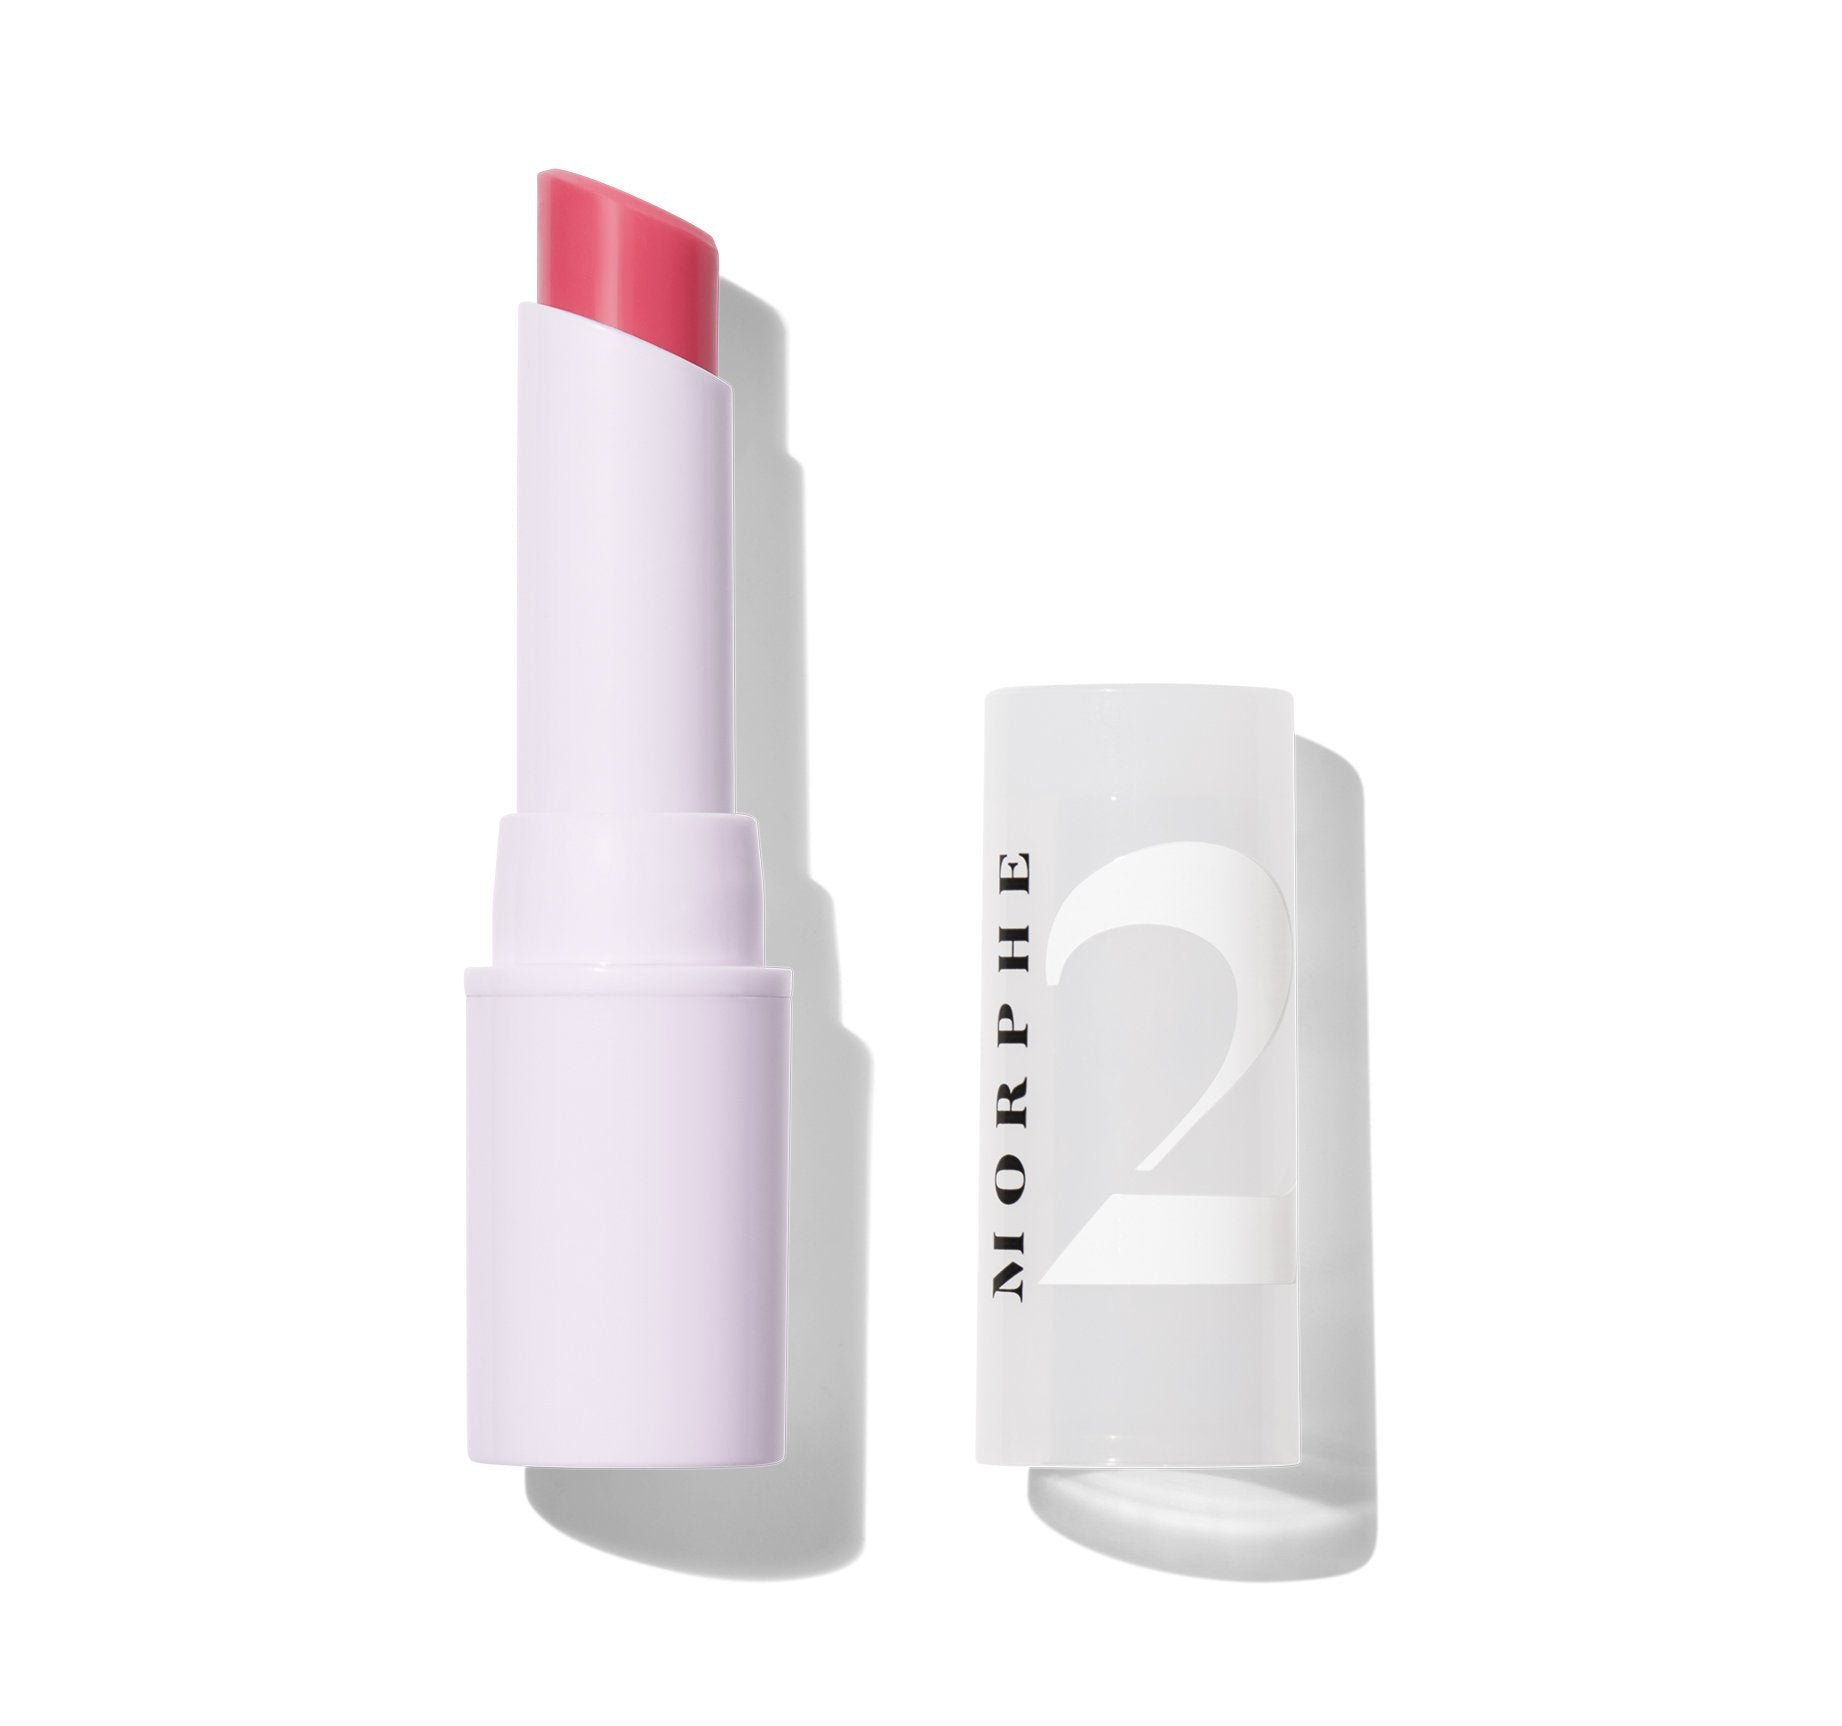 L-BALM LIP BALM - BERRY BLUSH, view larger image